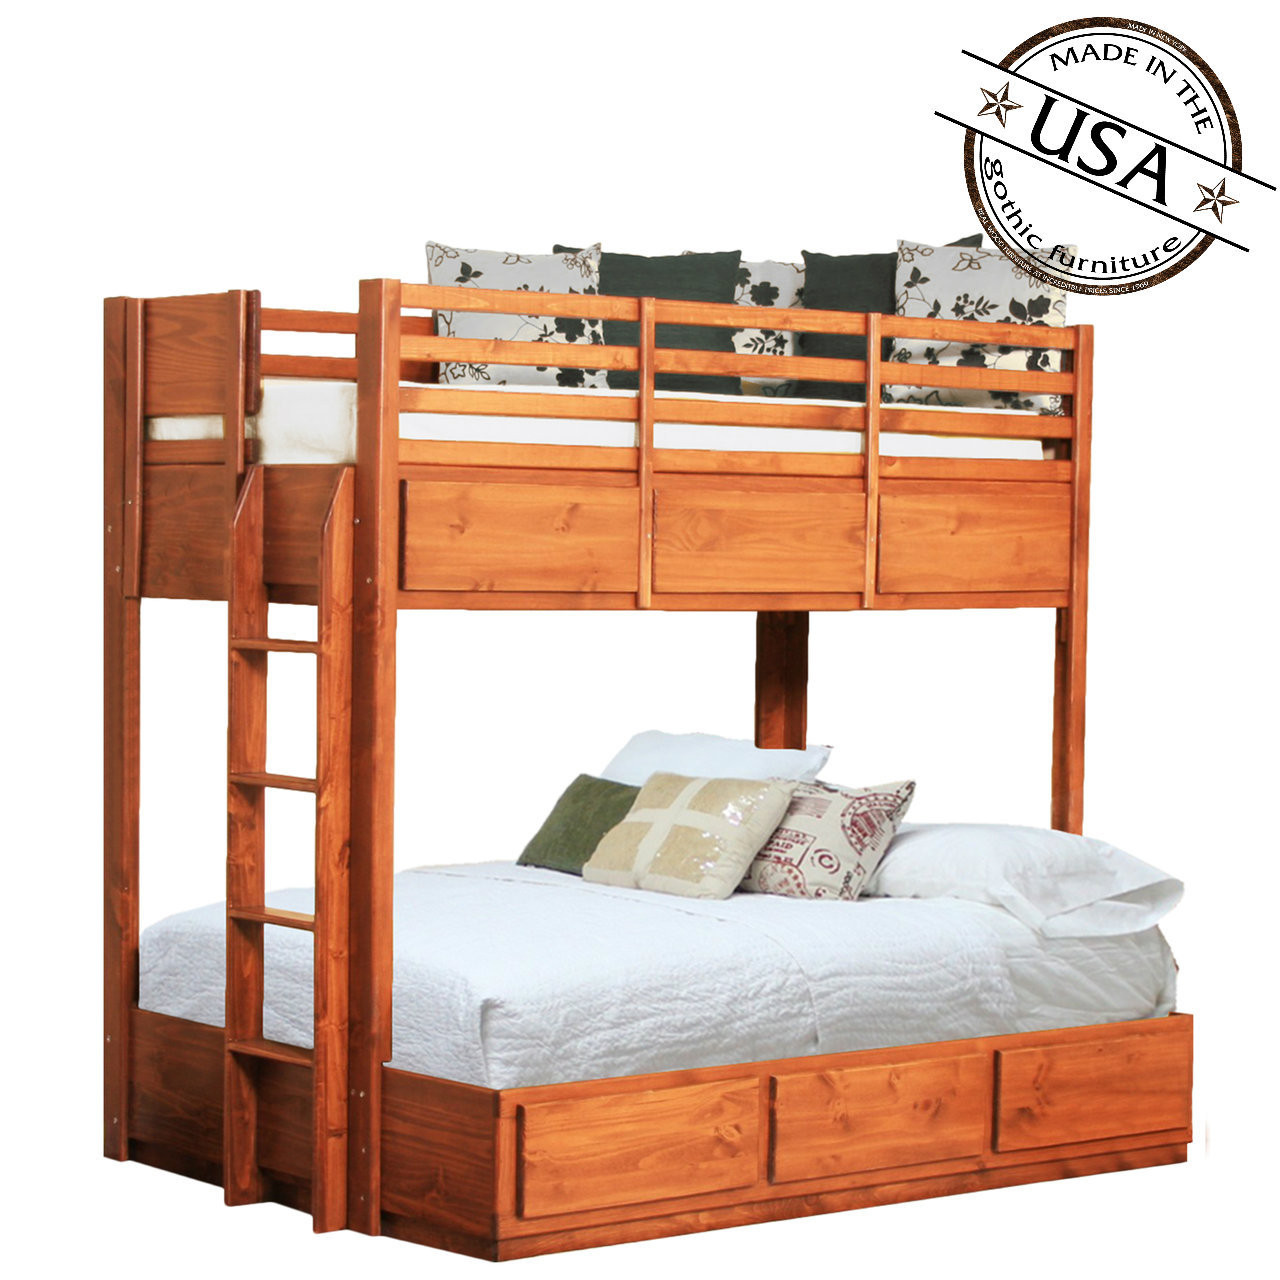 Twin Over Full Bunk Bed w 6 Drawers Pine Gothic Furniture